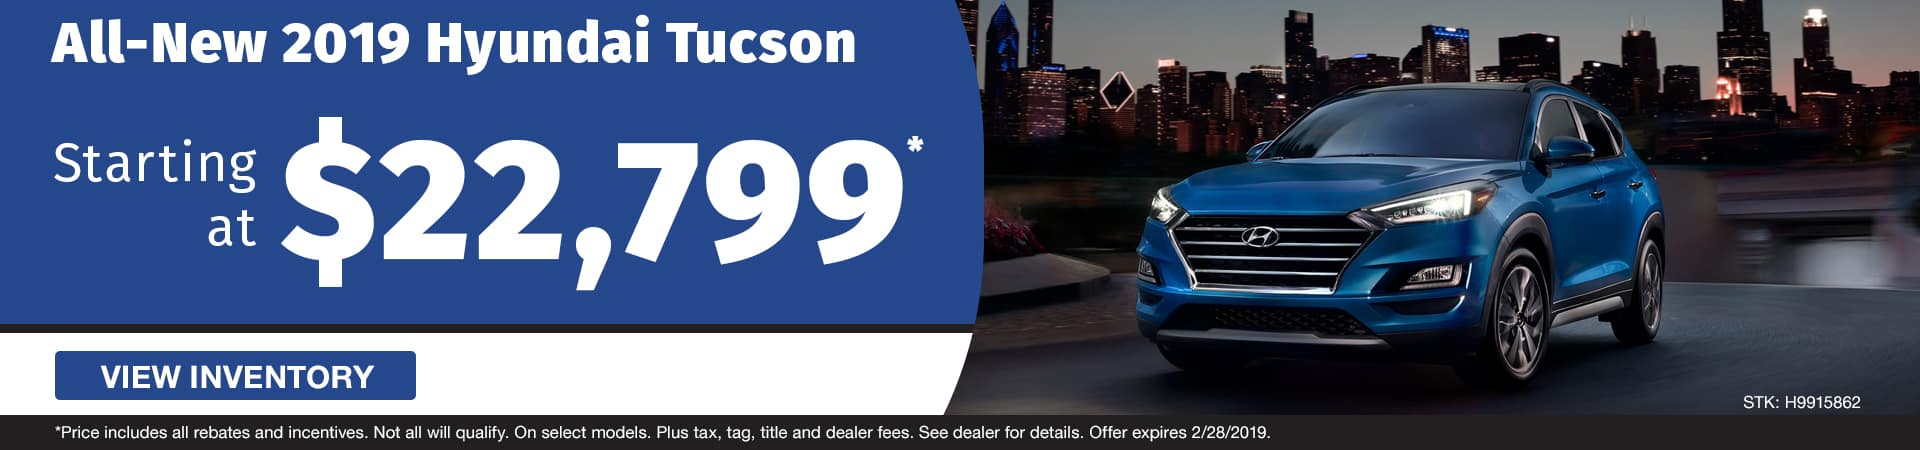 Drive home an all-new 2019 Hyundai Tucson starting at just $22,799 in Murfreesboro TN